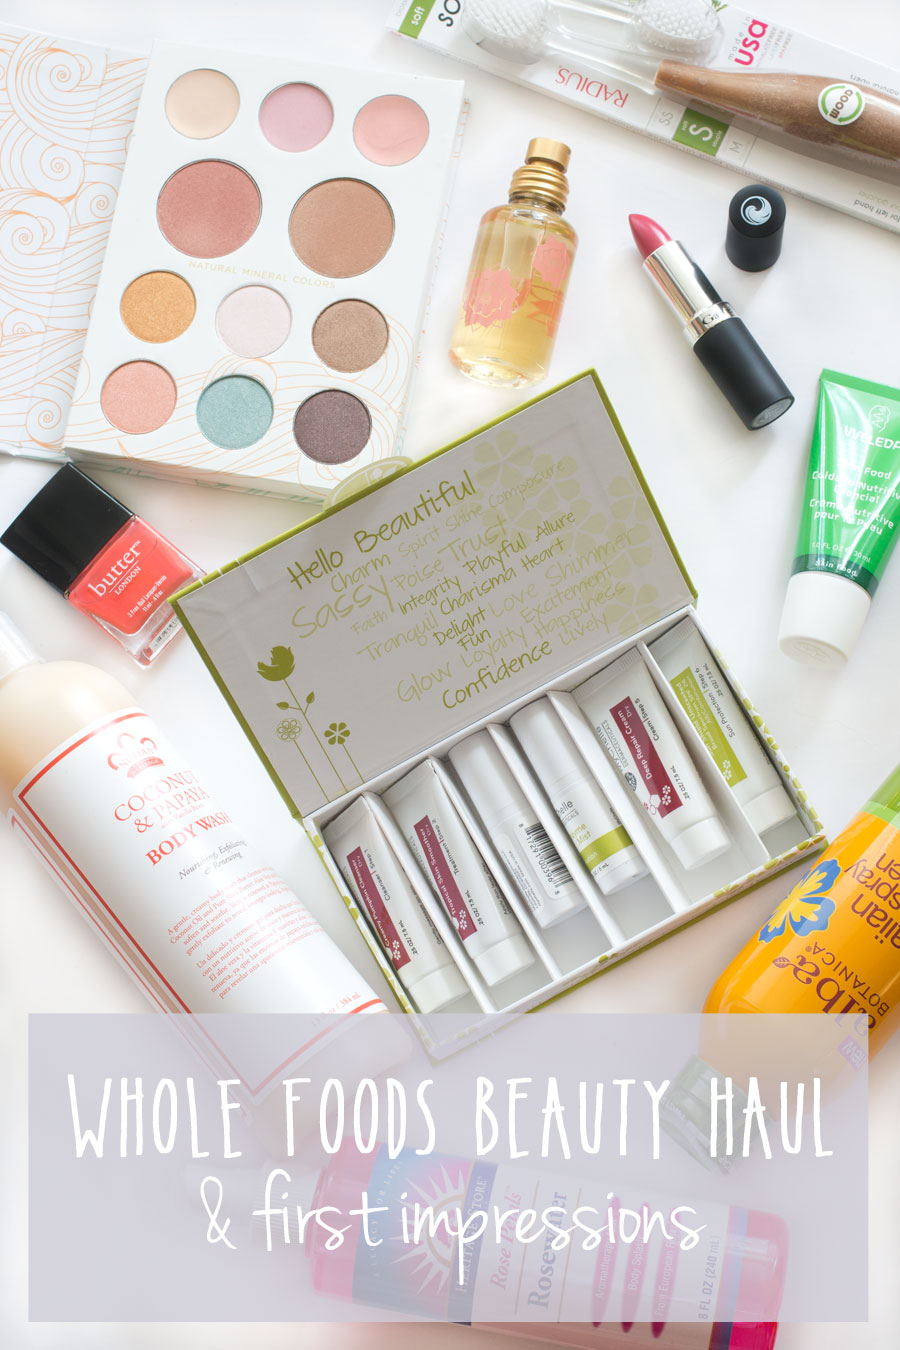 Whole Foods Beauty Haul & First Impressions / hellorigby seattle beauty blog